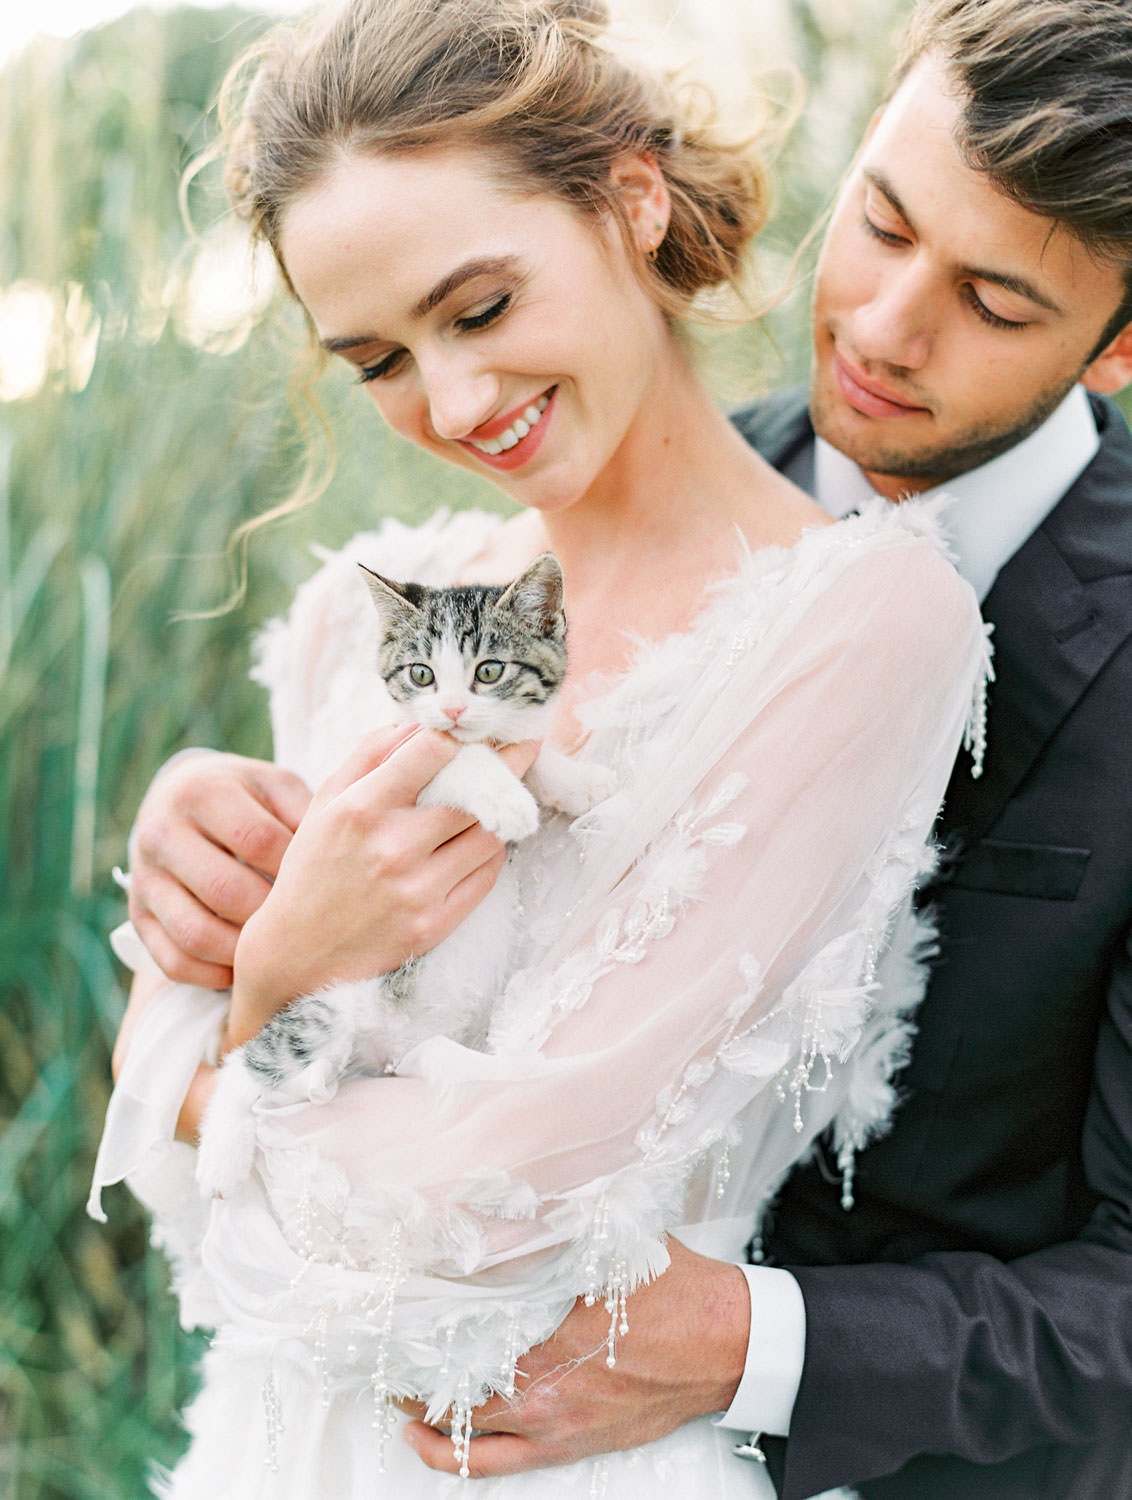 Bride in Marchesa Poppy gown and groom in The Black Tux holding a seven week old kitten, Pampas Grass Wedding in San Diego on Film by Cavin Elizabeth Photography